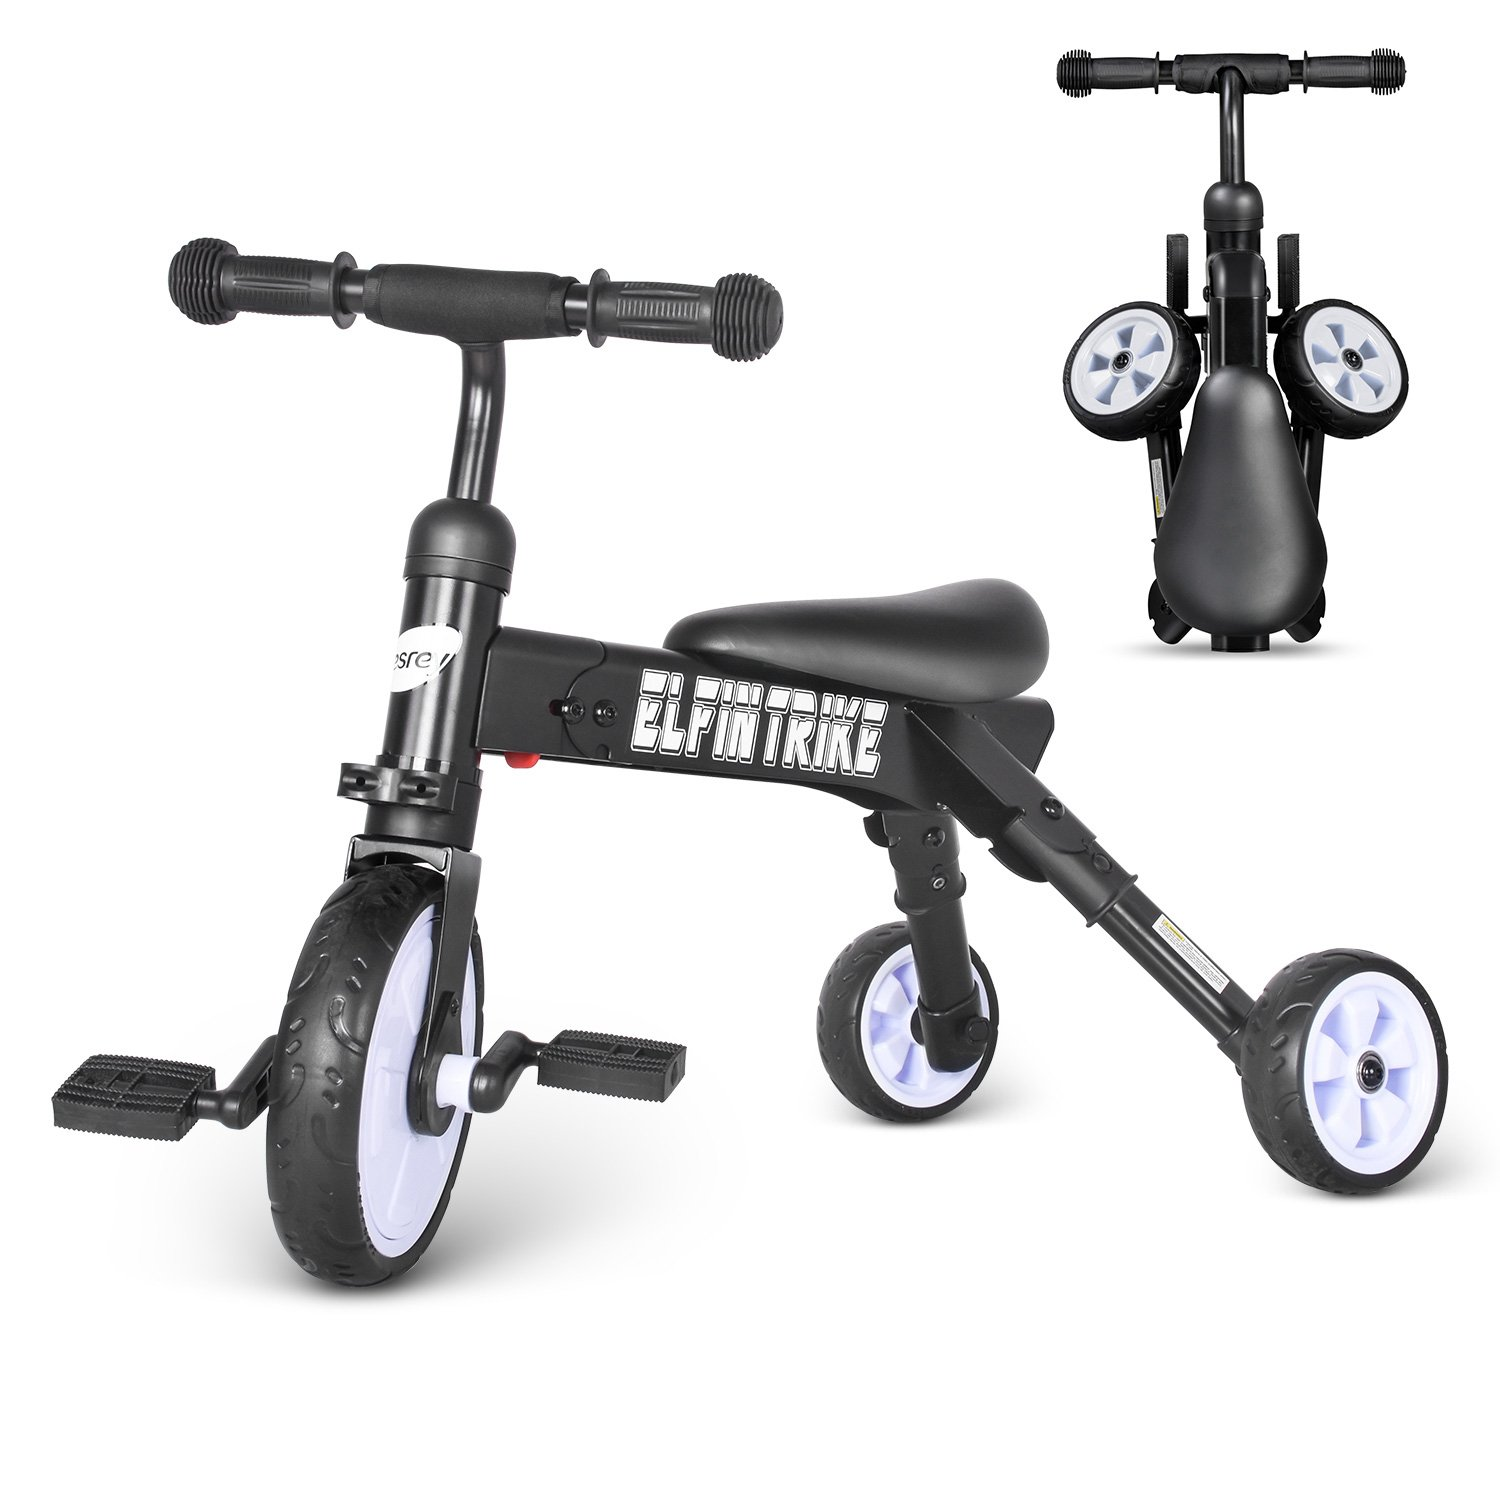 besrey 3 In 1 Baby Trike /& Toddlers Glide /& Foldable Tricycle BR-C7073